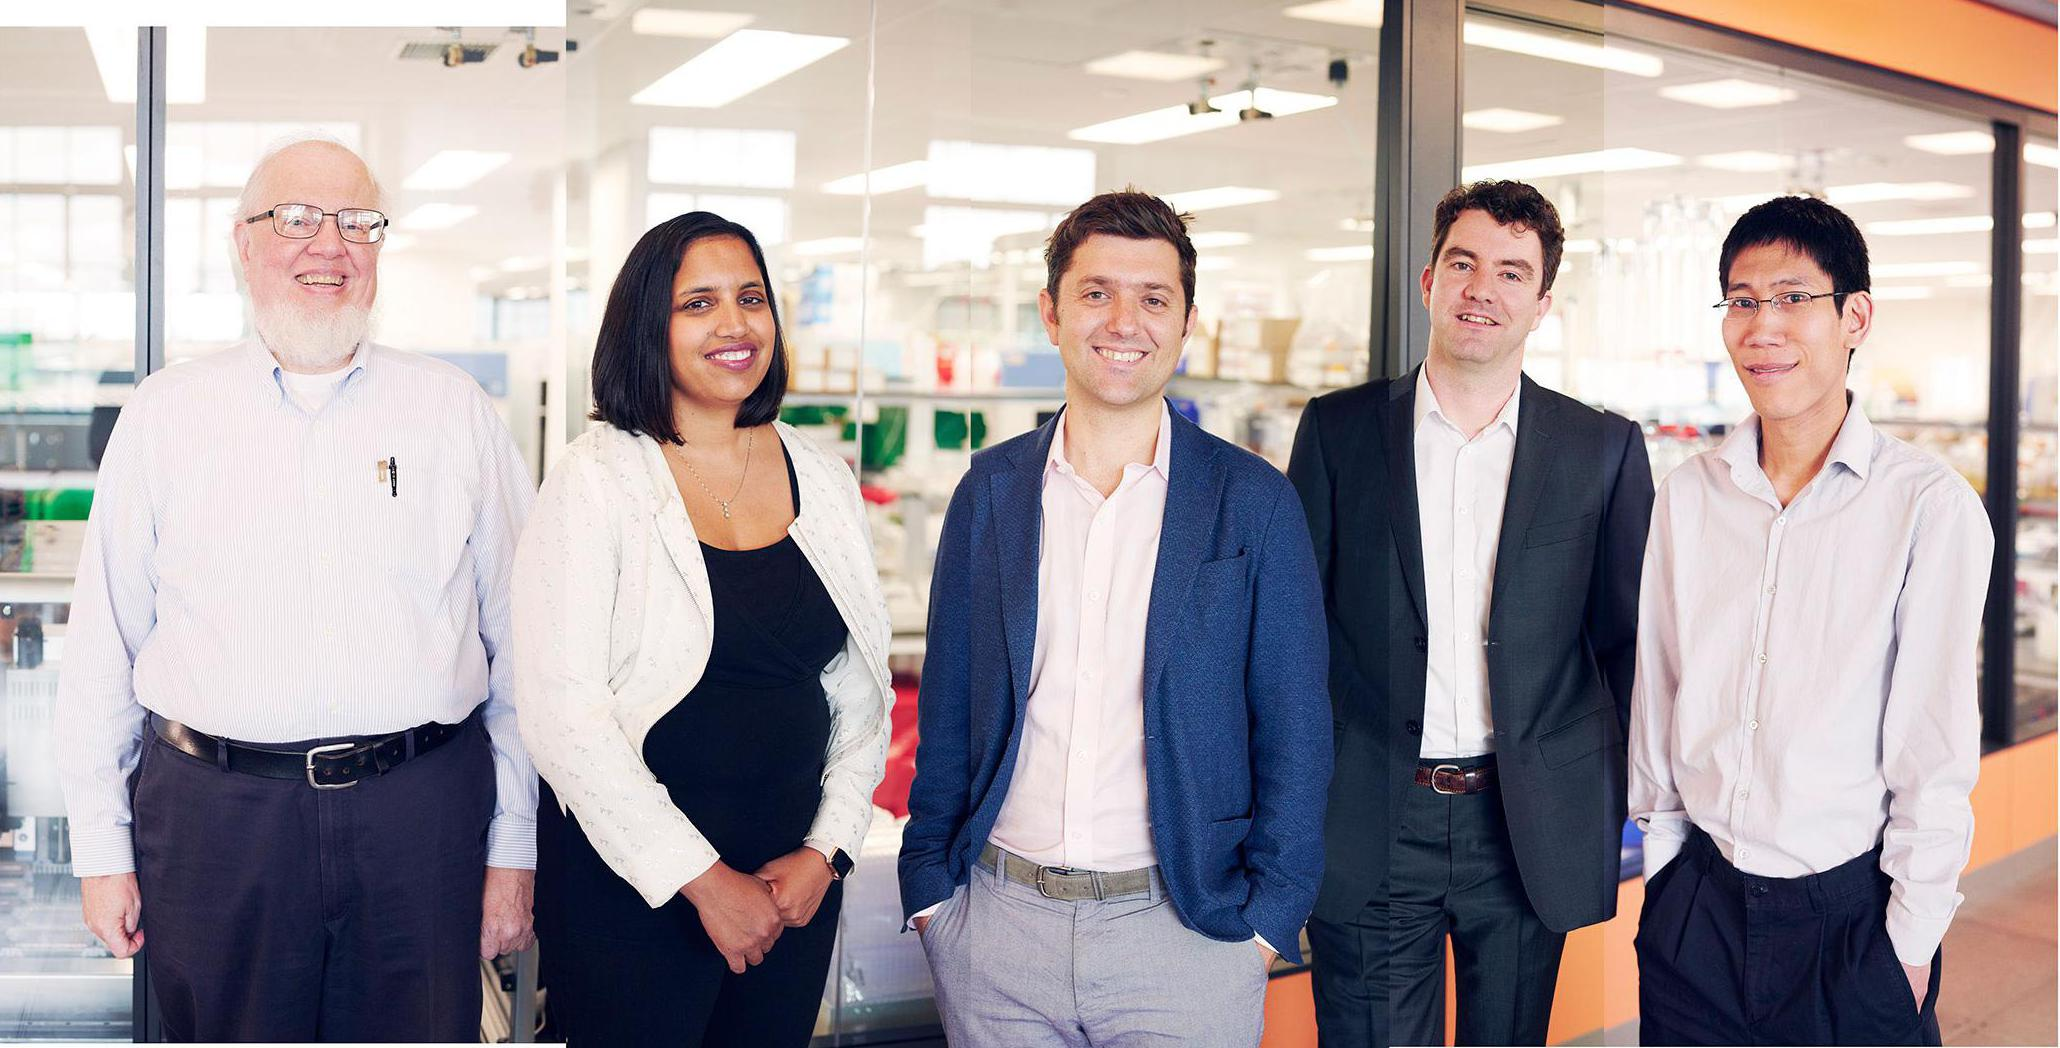 Ginkgo Bioworks cofounders (from left to right) Tom Knight, Reshma Shetty, Jason Kelly, Barry Canton and Austin Che.